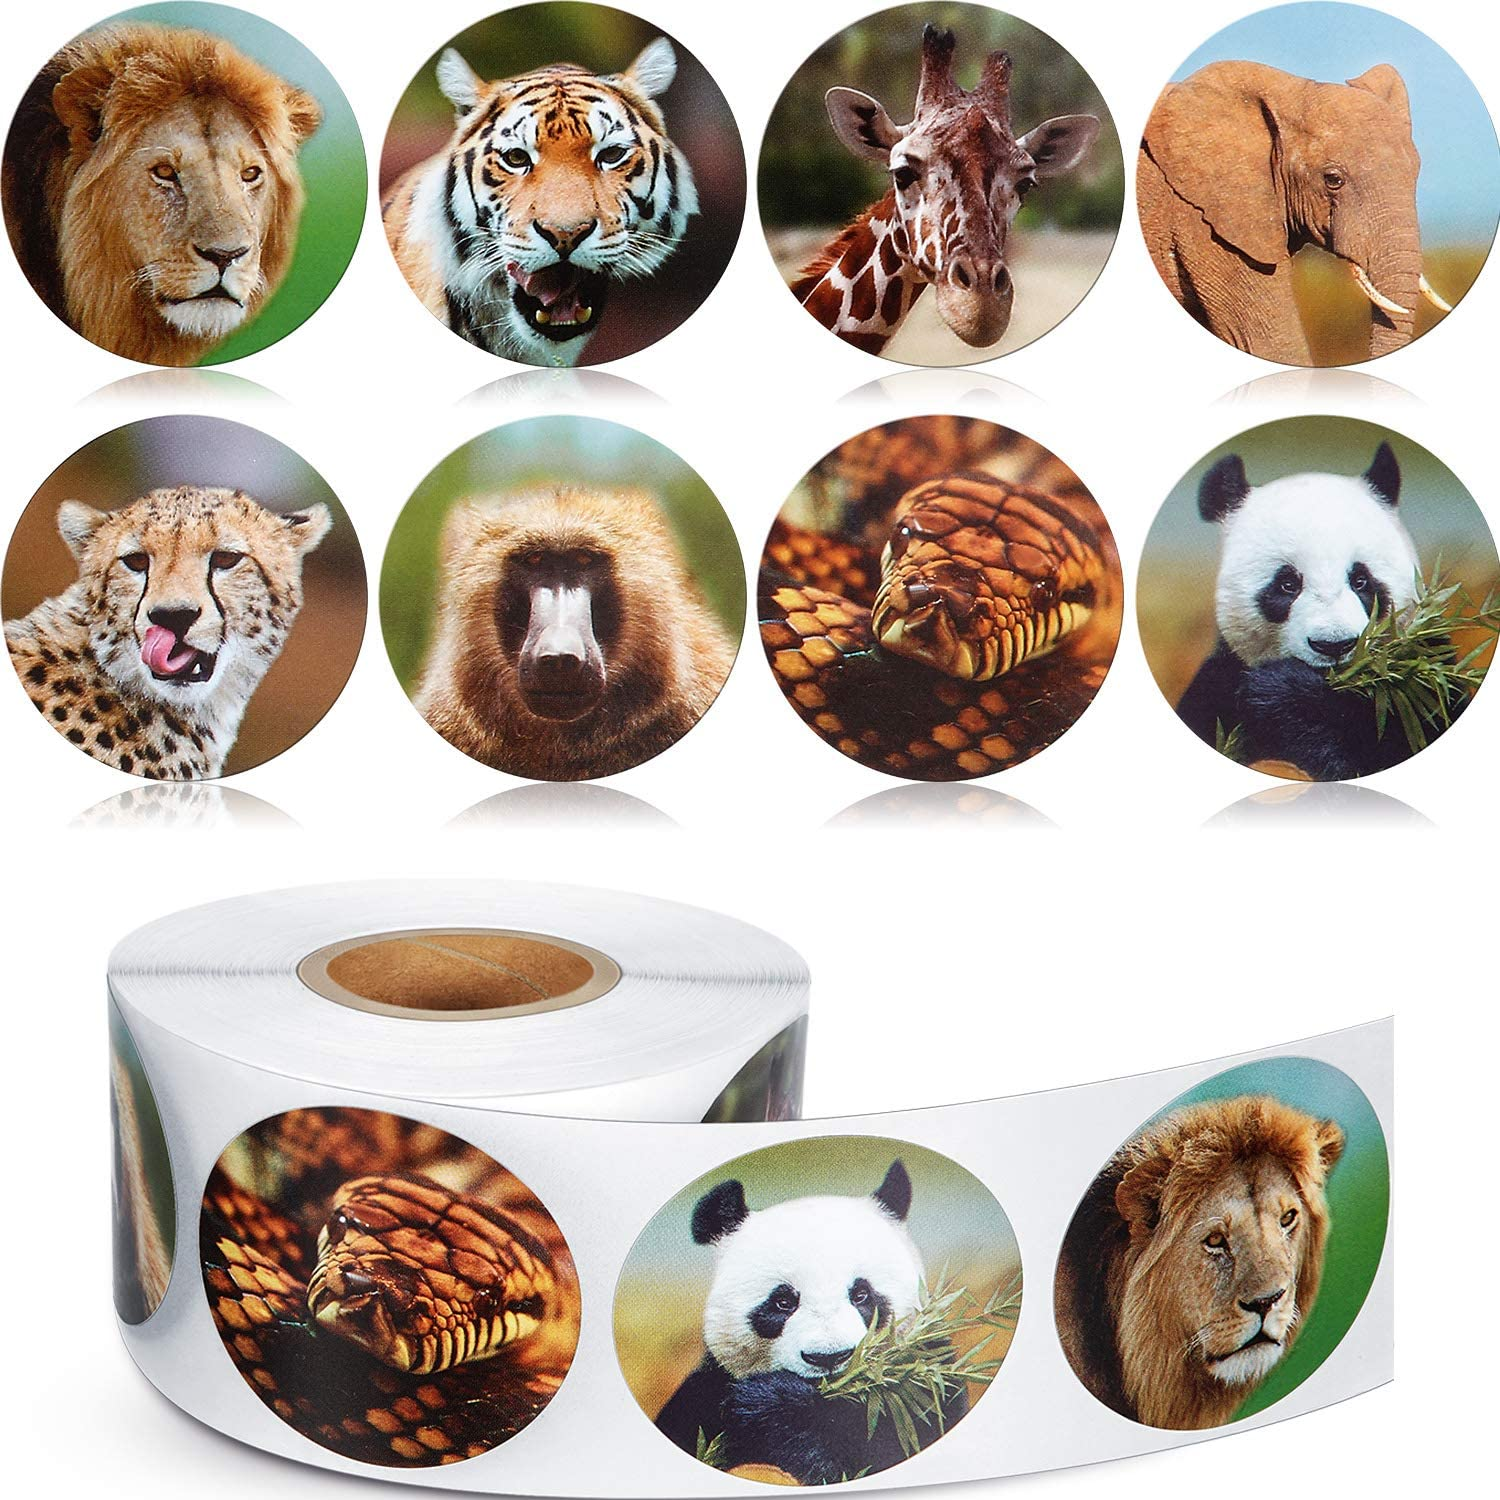 Chinco 500 Pieces Animal Stickers Zoo Animal Roll Stickers 1-1/2 Inch Self Adhesive Label Animal Shape Wall Decals for Kids Party Favors, 8 Styles